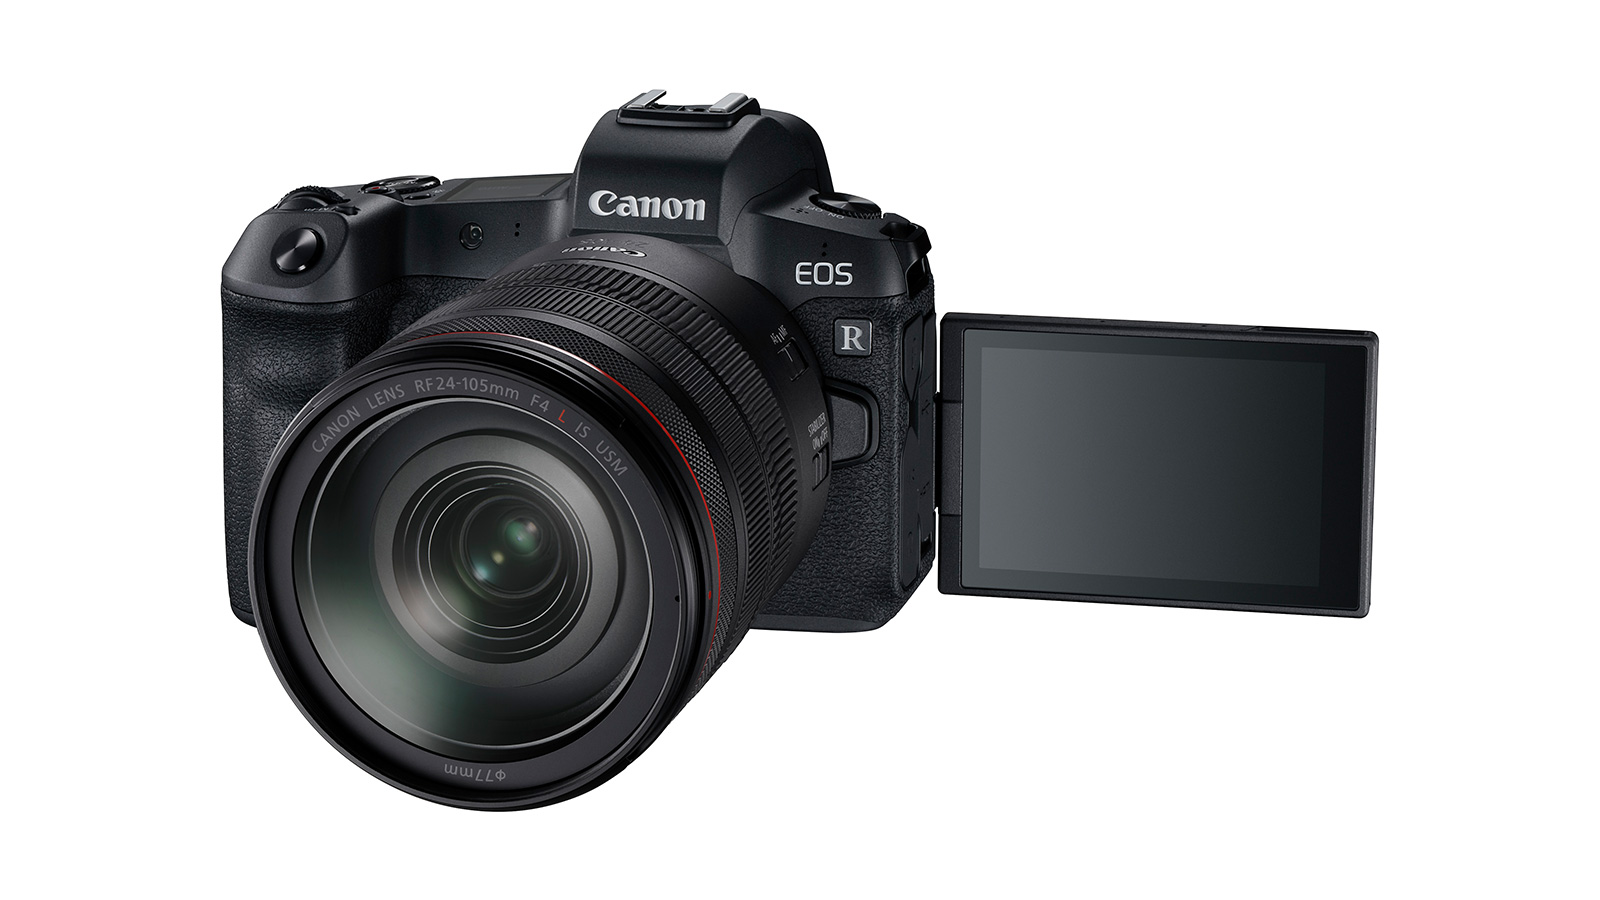 Canon Announces EOS R, 30.3MP Full-Frame Mirrorless